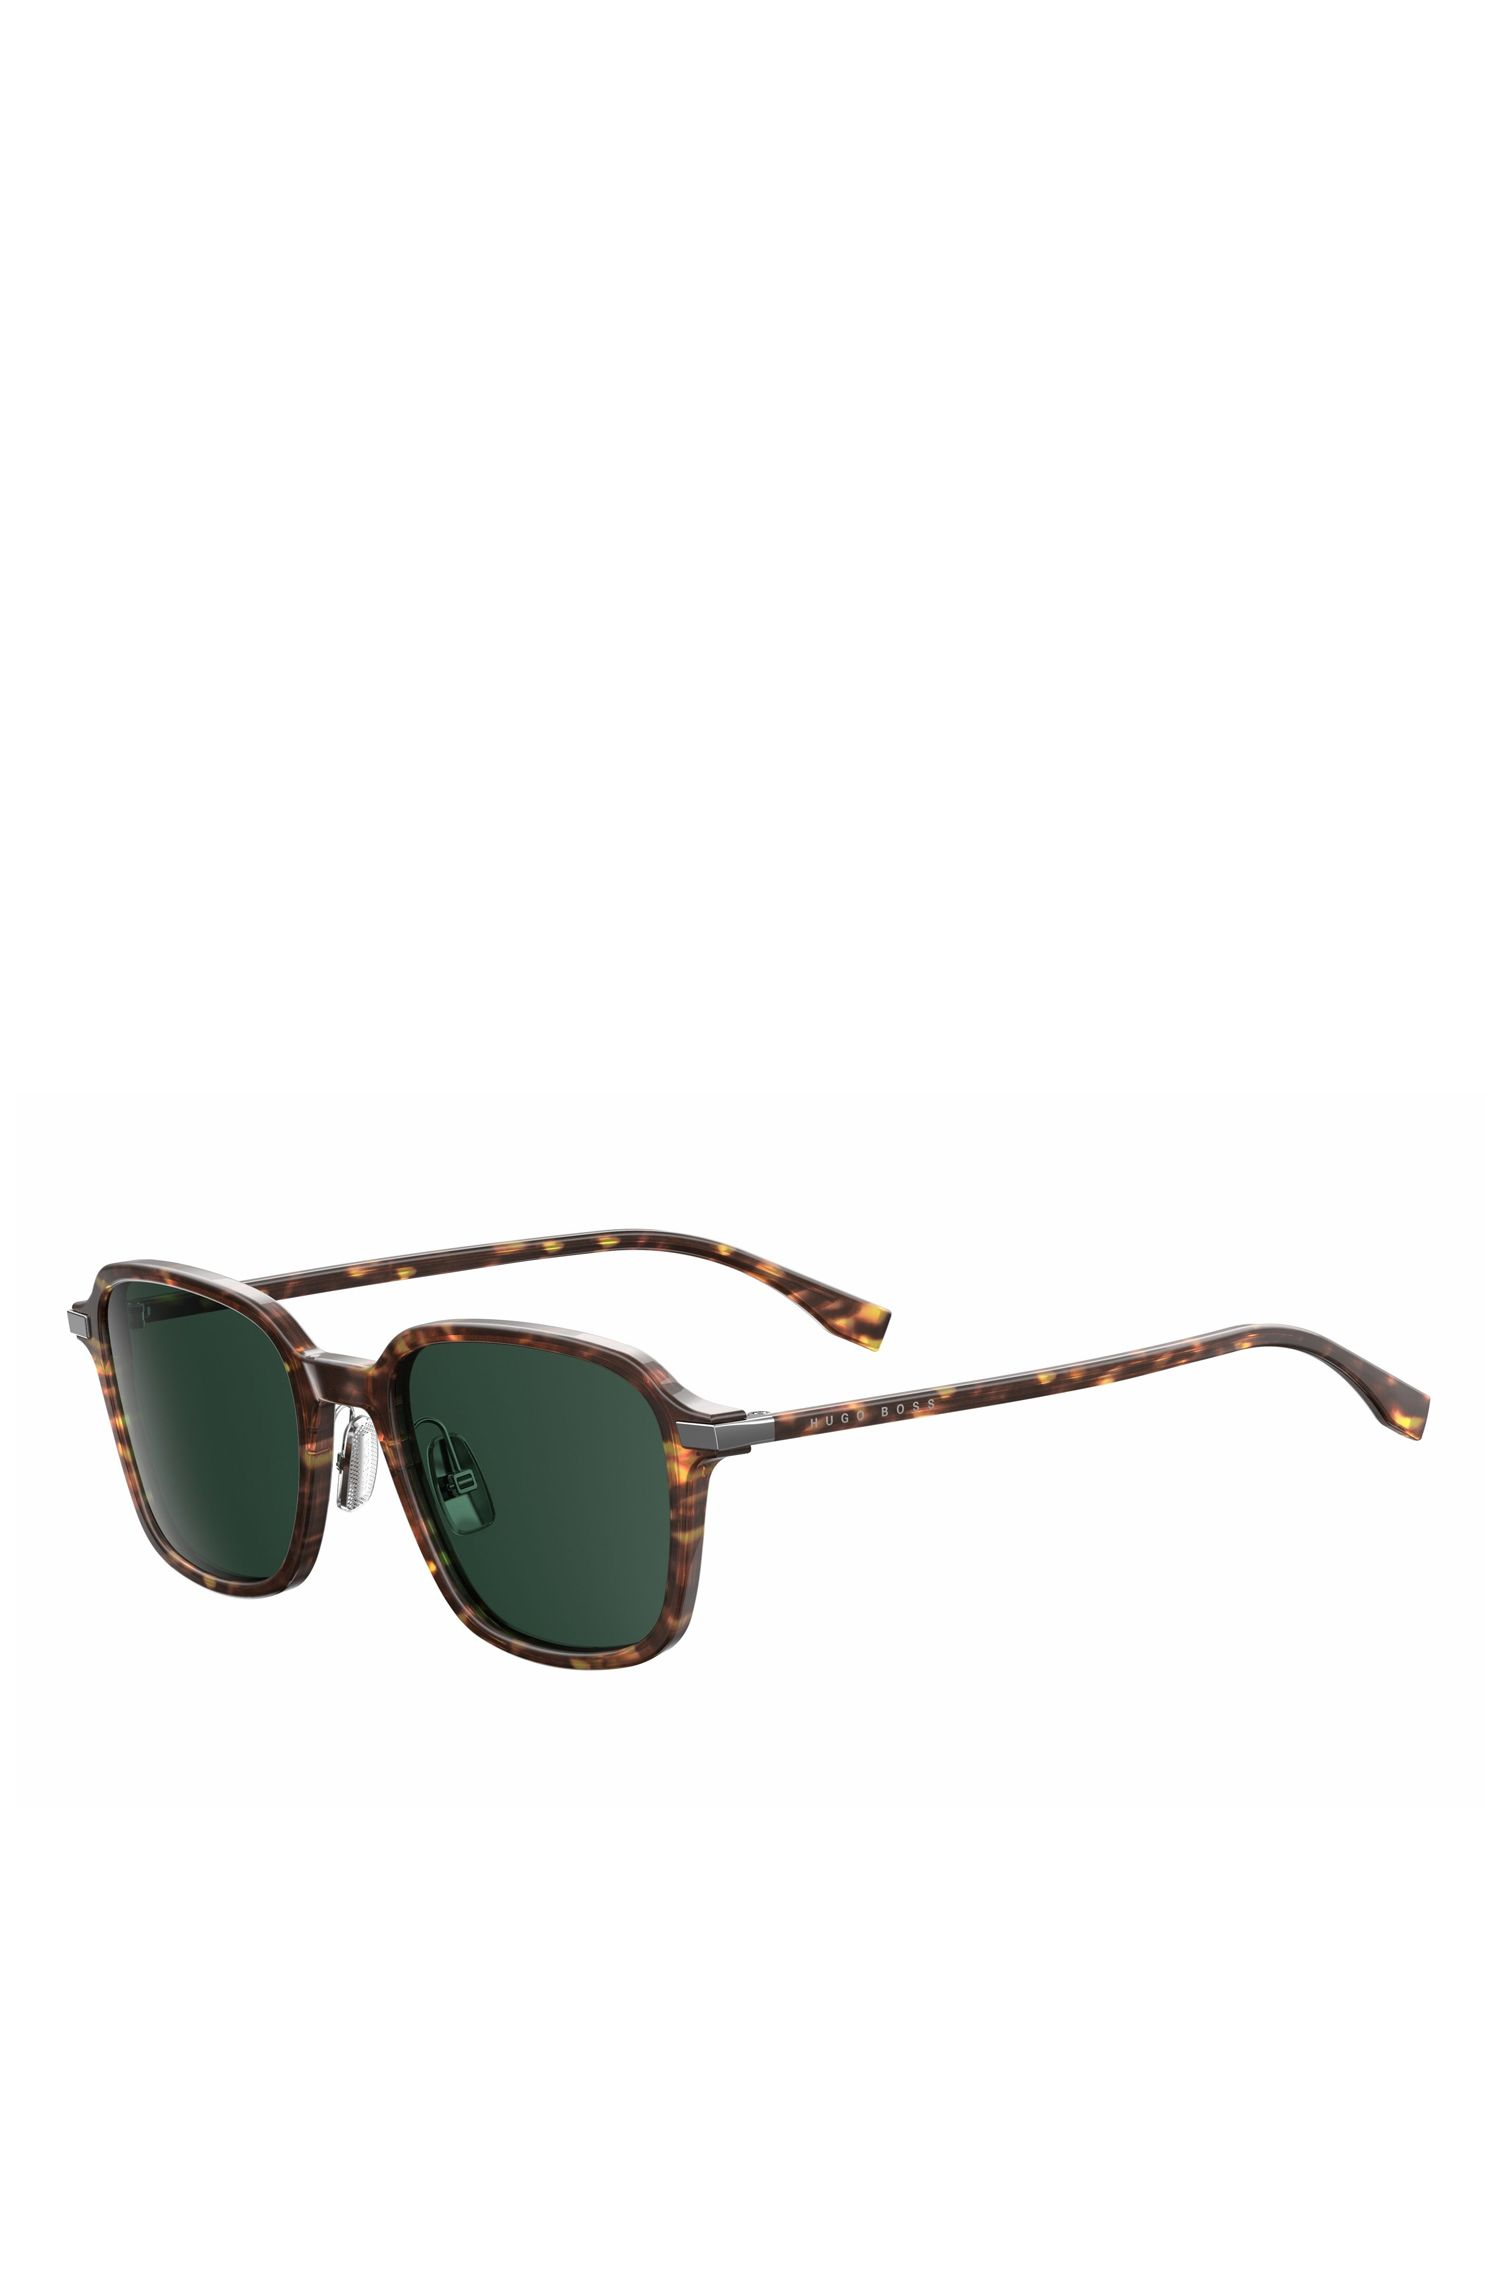 '0909S' | Green Lens Havana Square Sunglasses